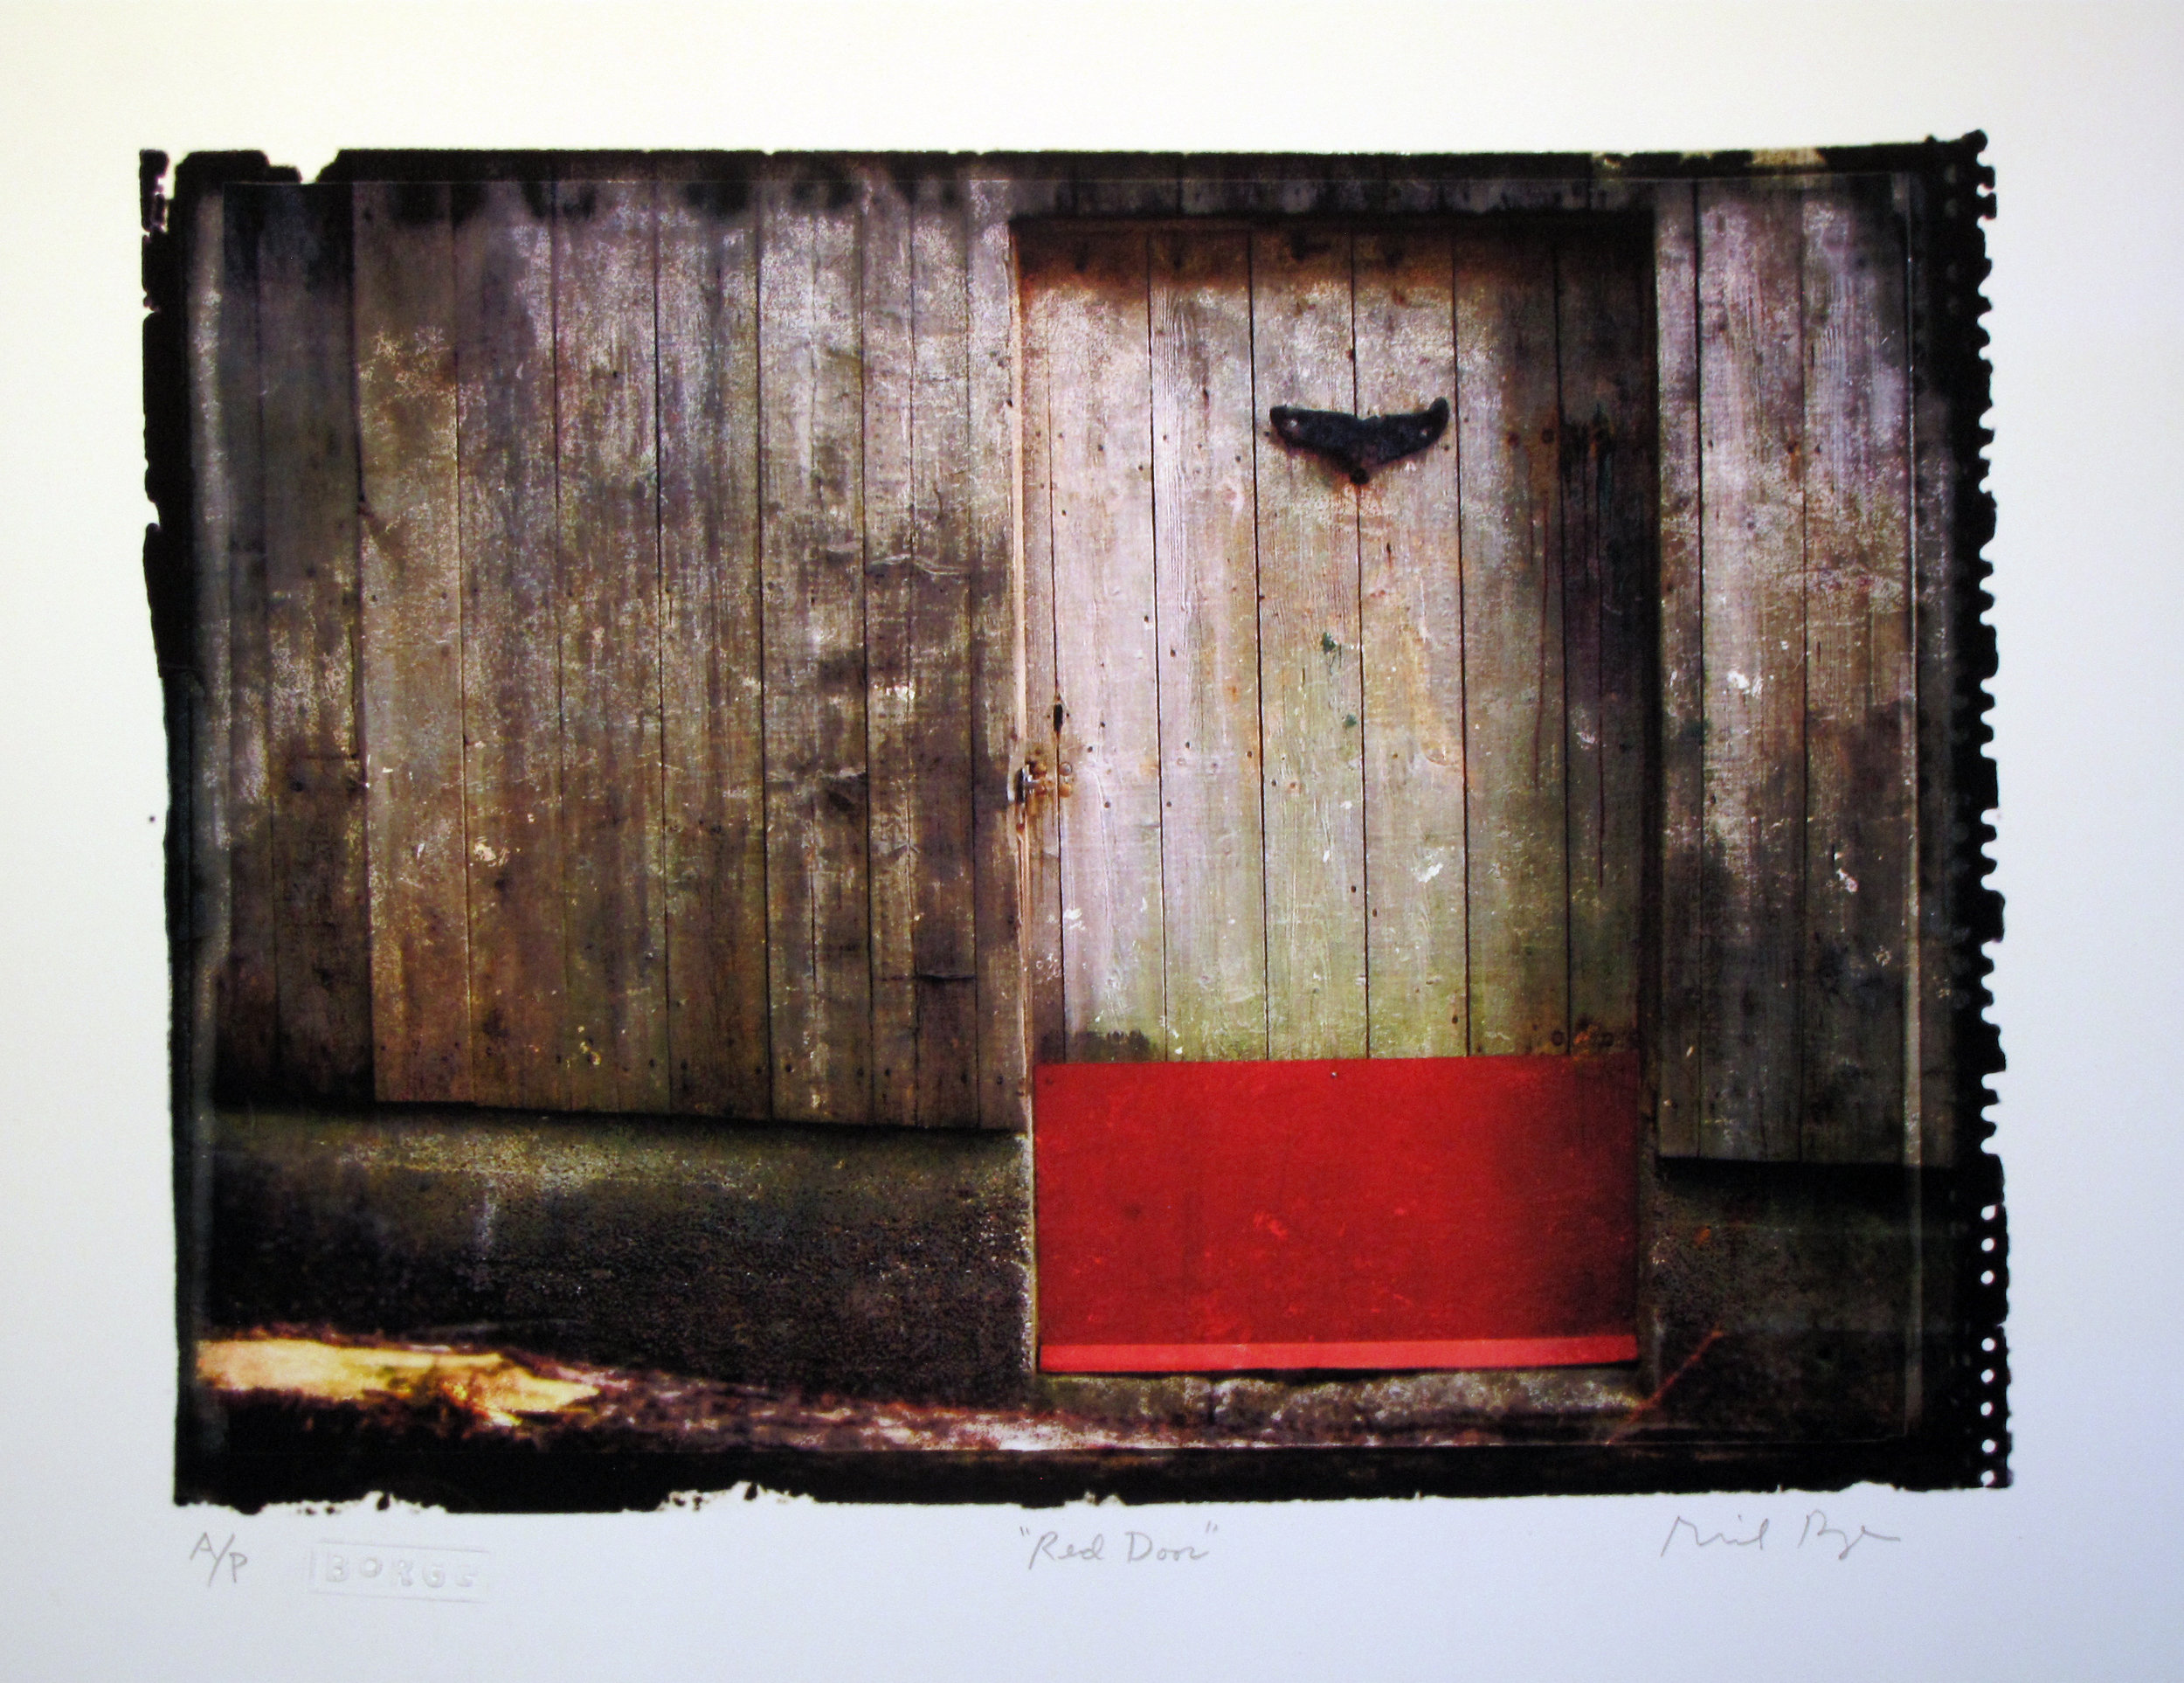 Borge_Richard_01_Red Door_Print_10 x 13 in_Framed.jpg